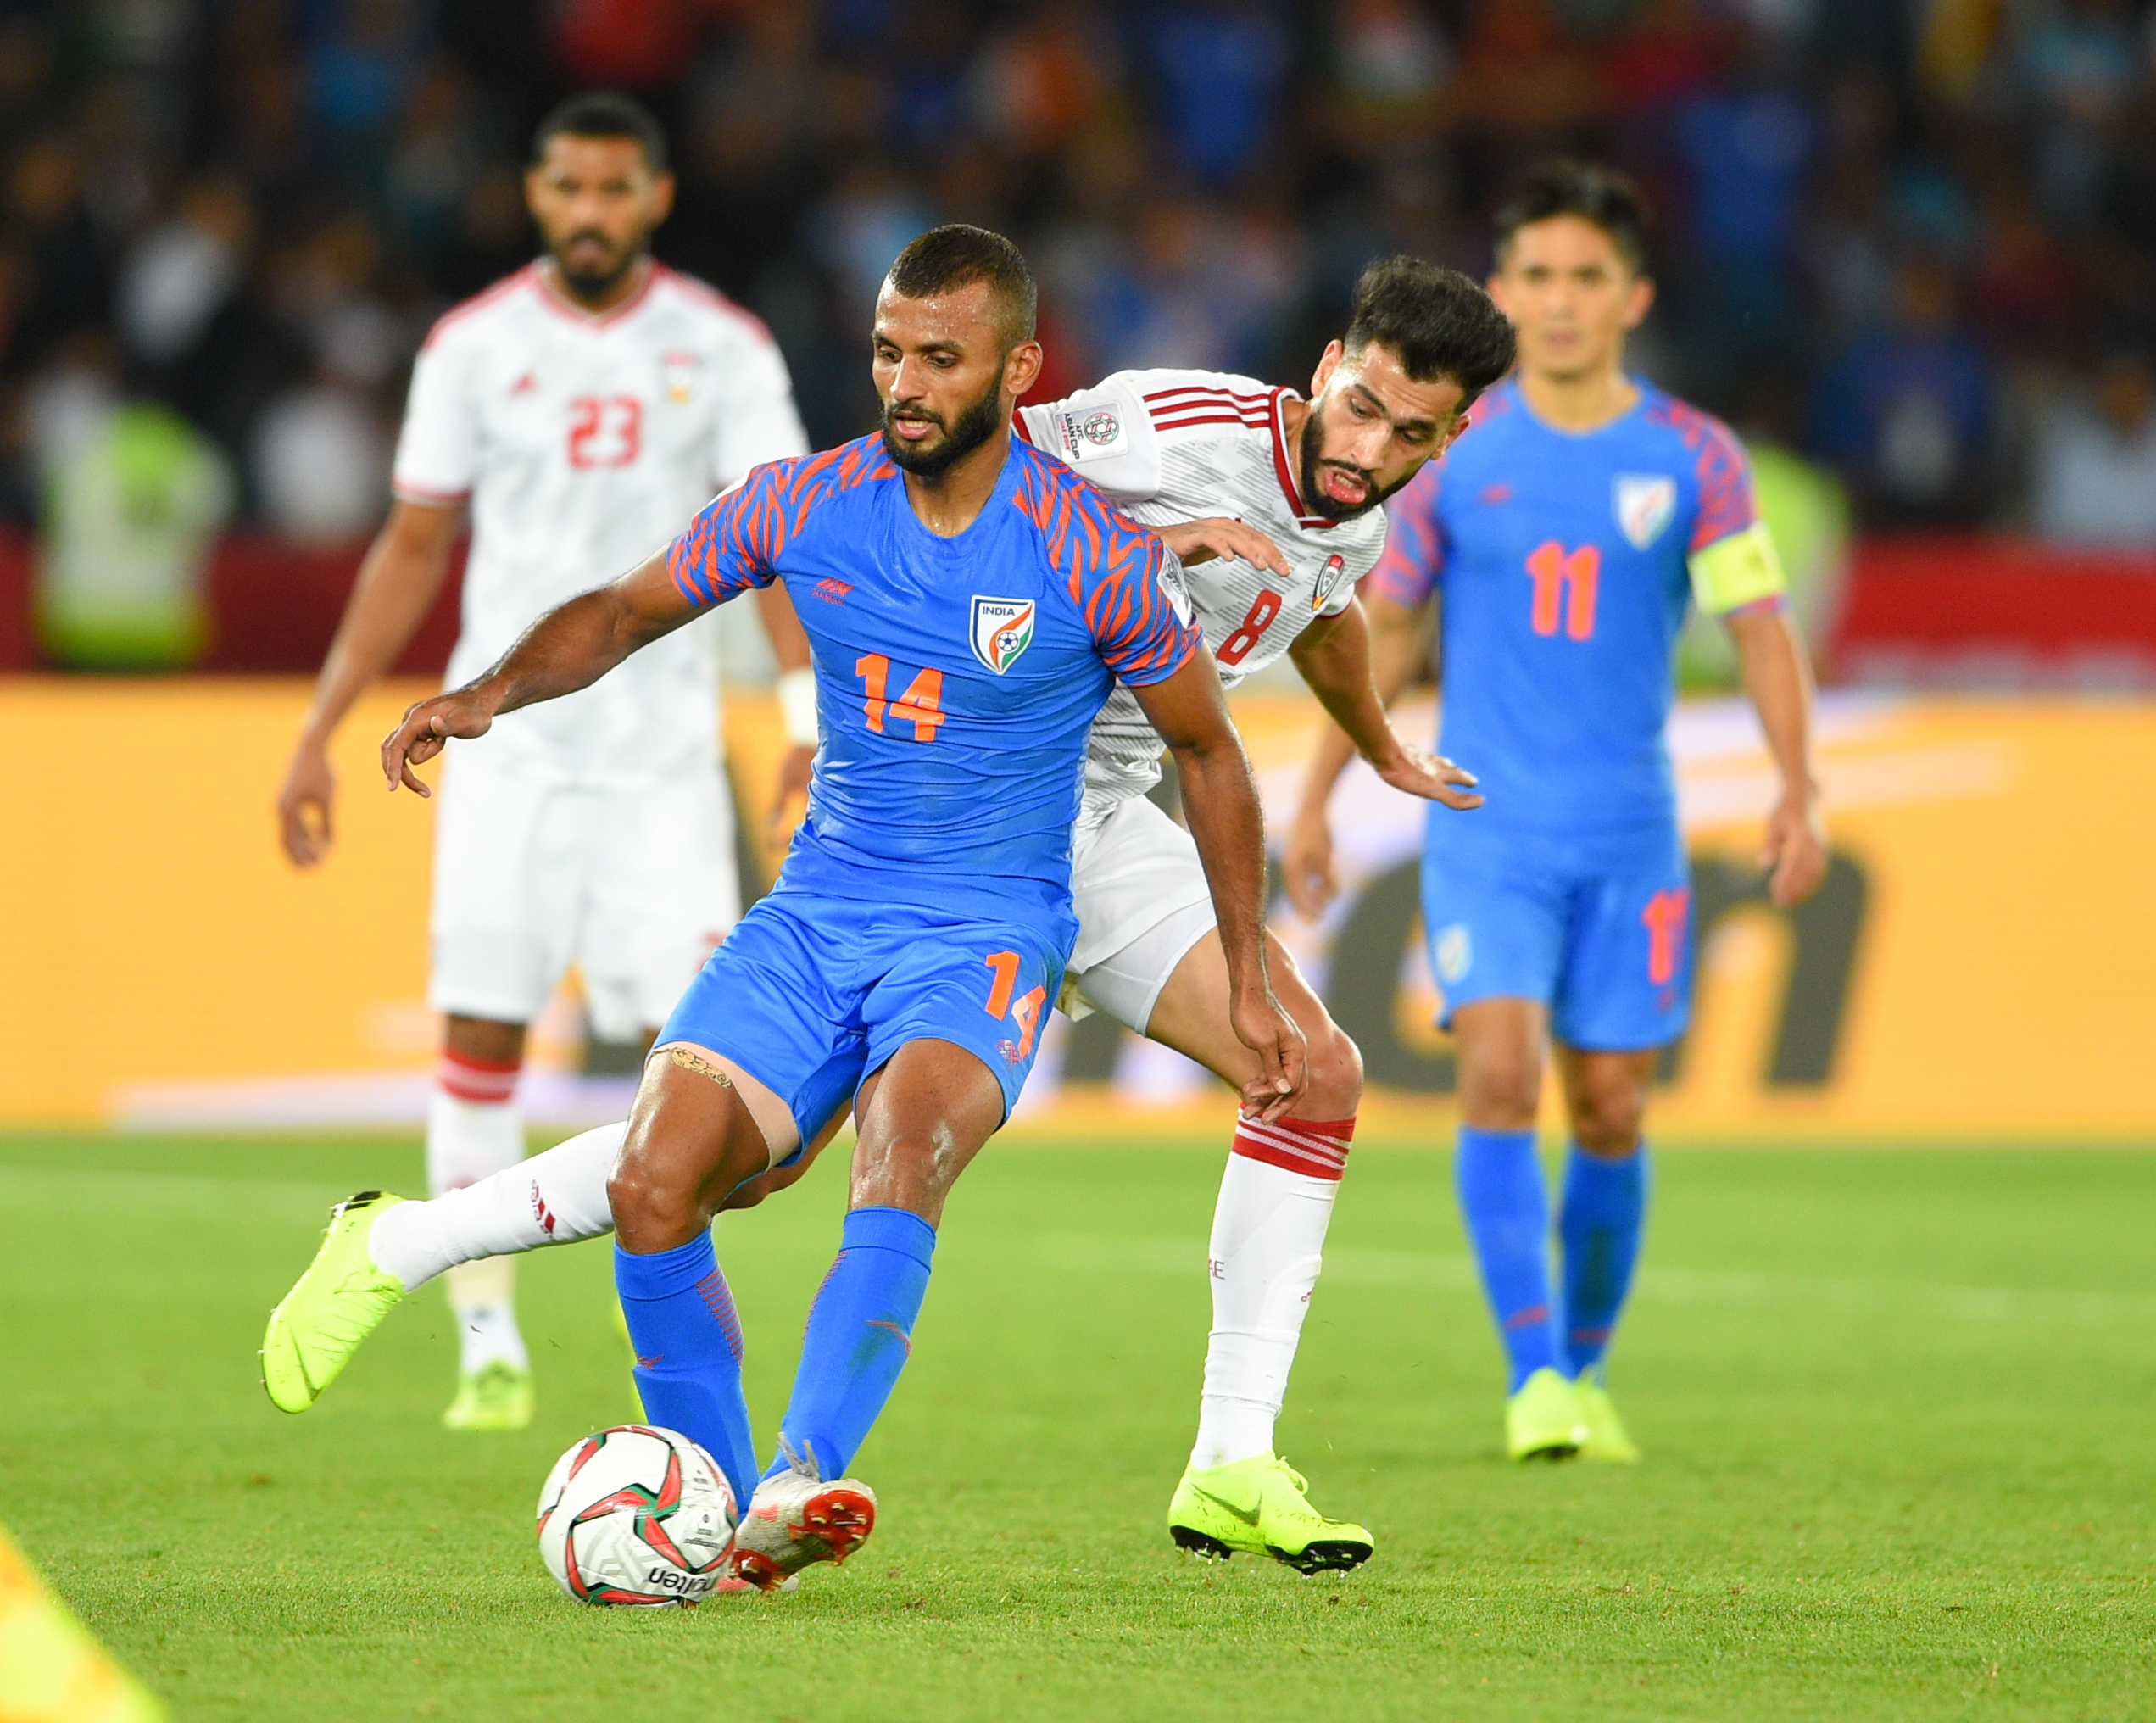 Guwahati and Kolkata to host world cup qualifiers against Oman and Bangladesh respectively